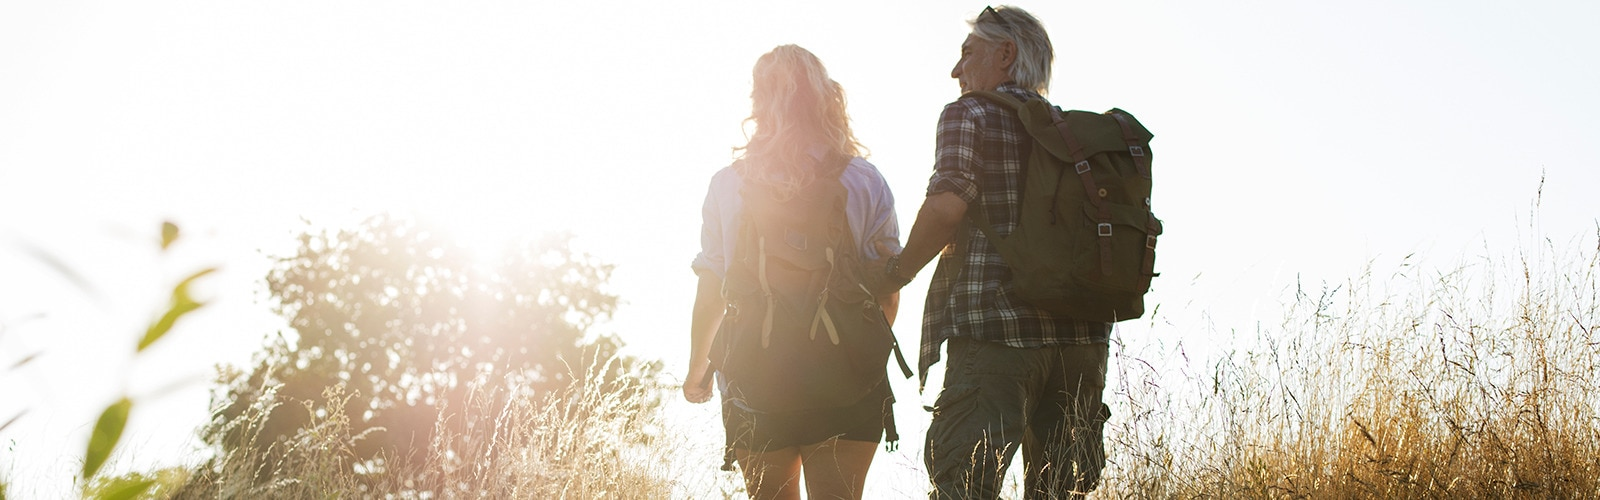 Mature man and woman hiking across a field